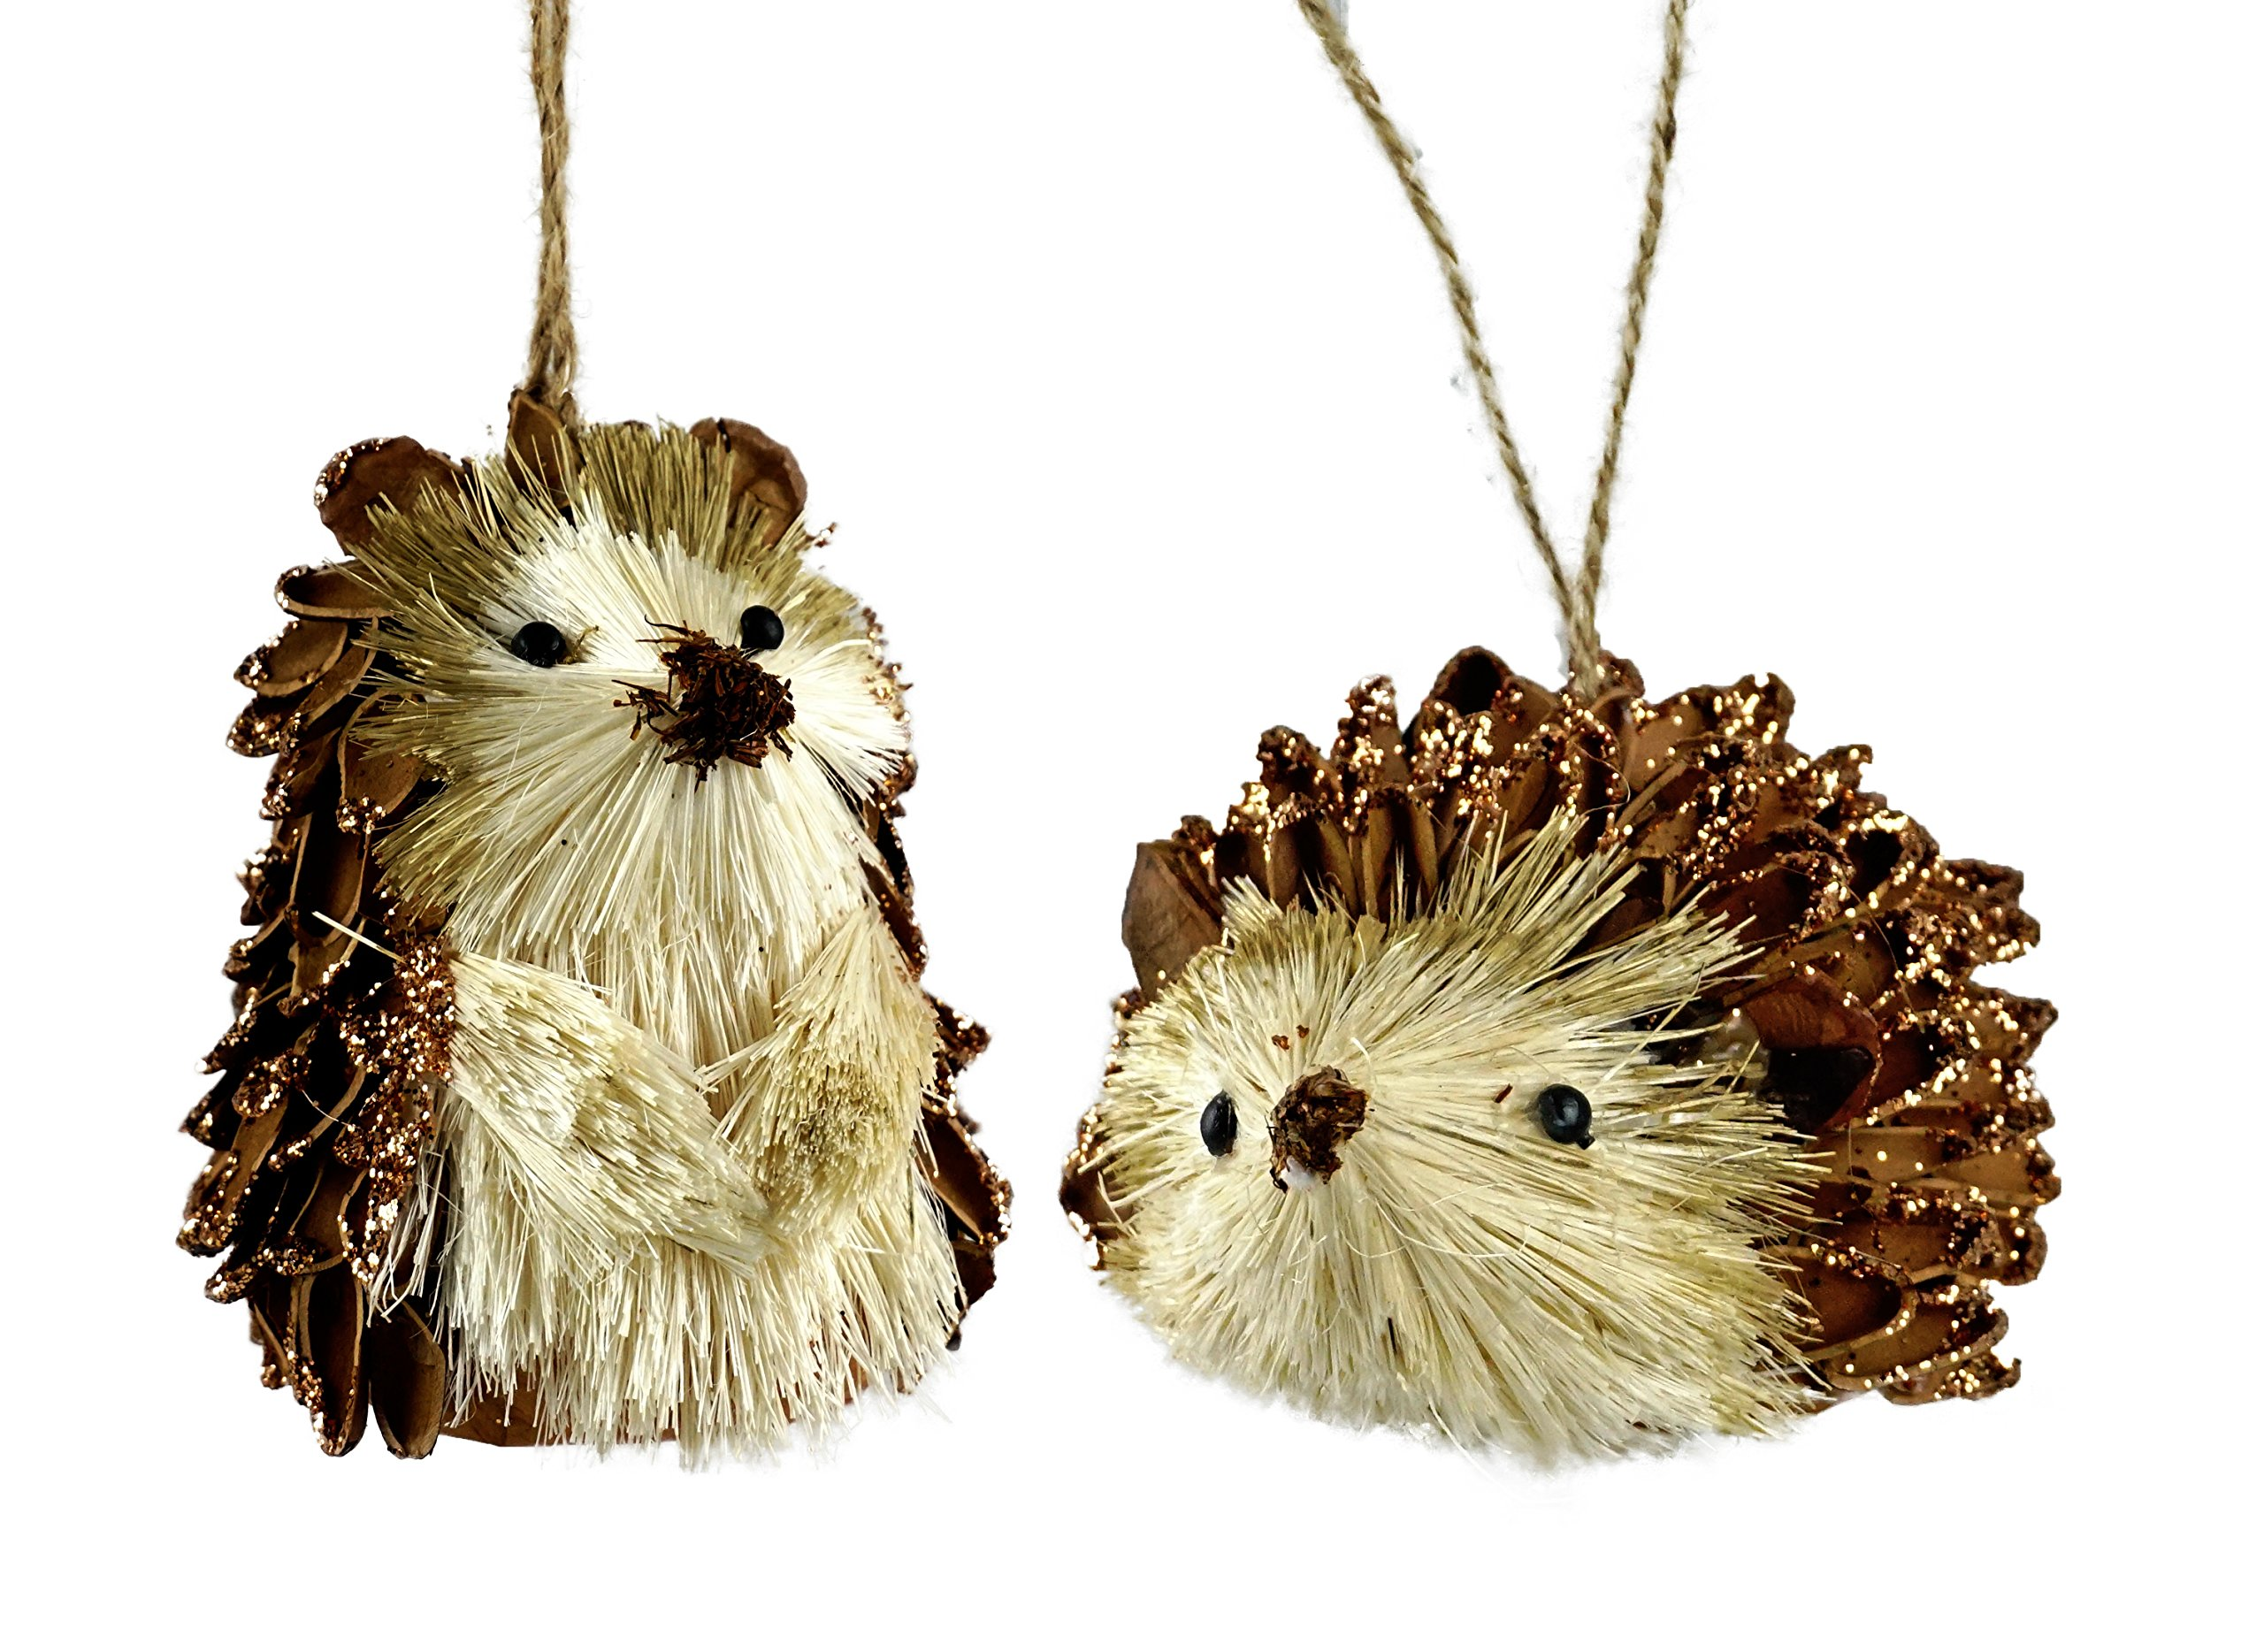 Creative Co-op Woodland Pinecone Hedgehog Hanging Christmas Ornaments - Set of 2